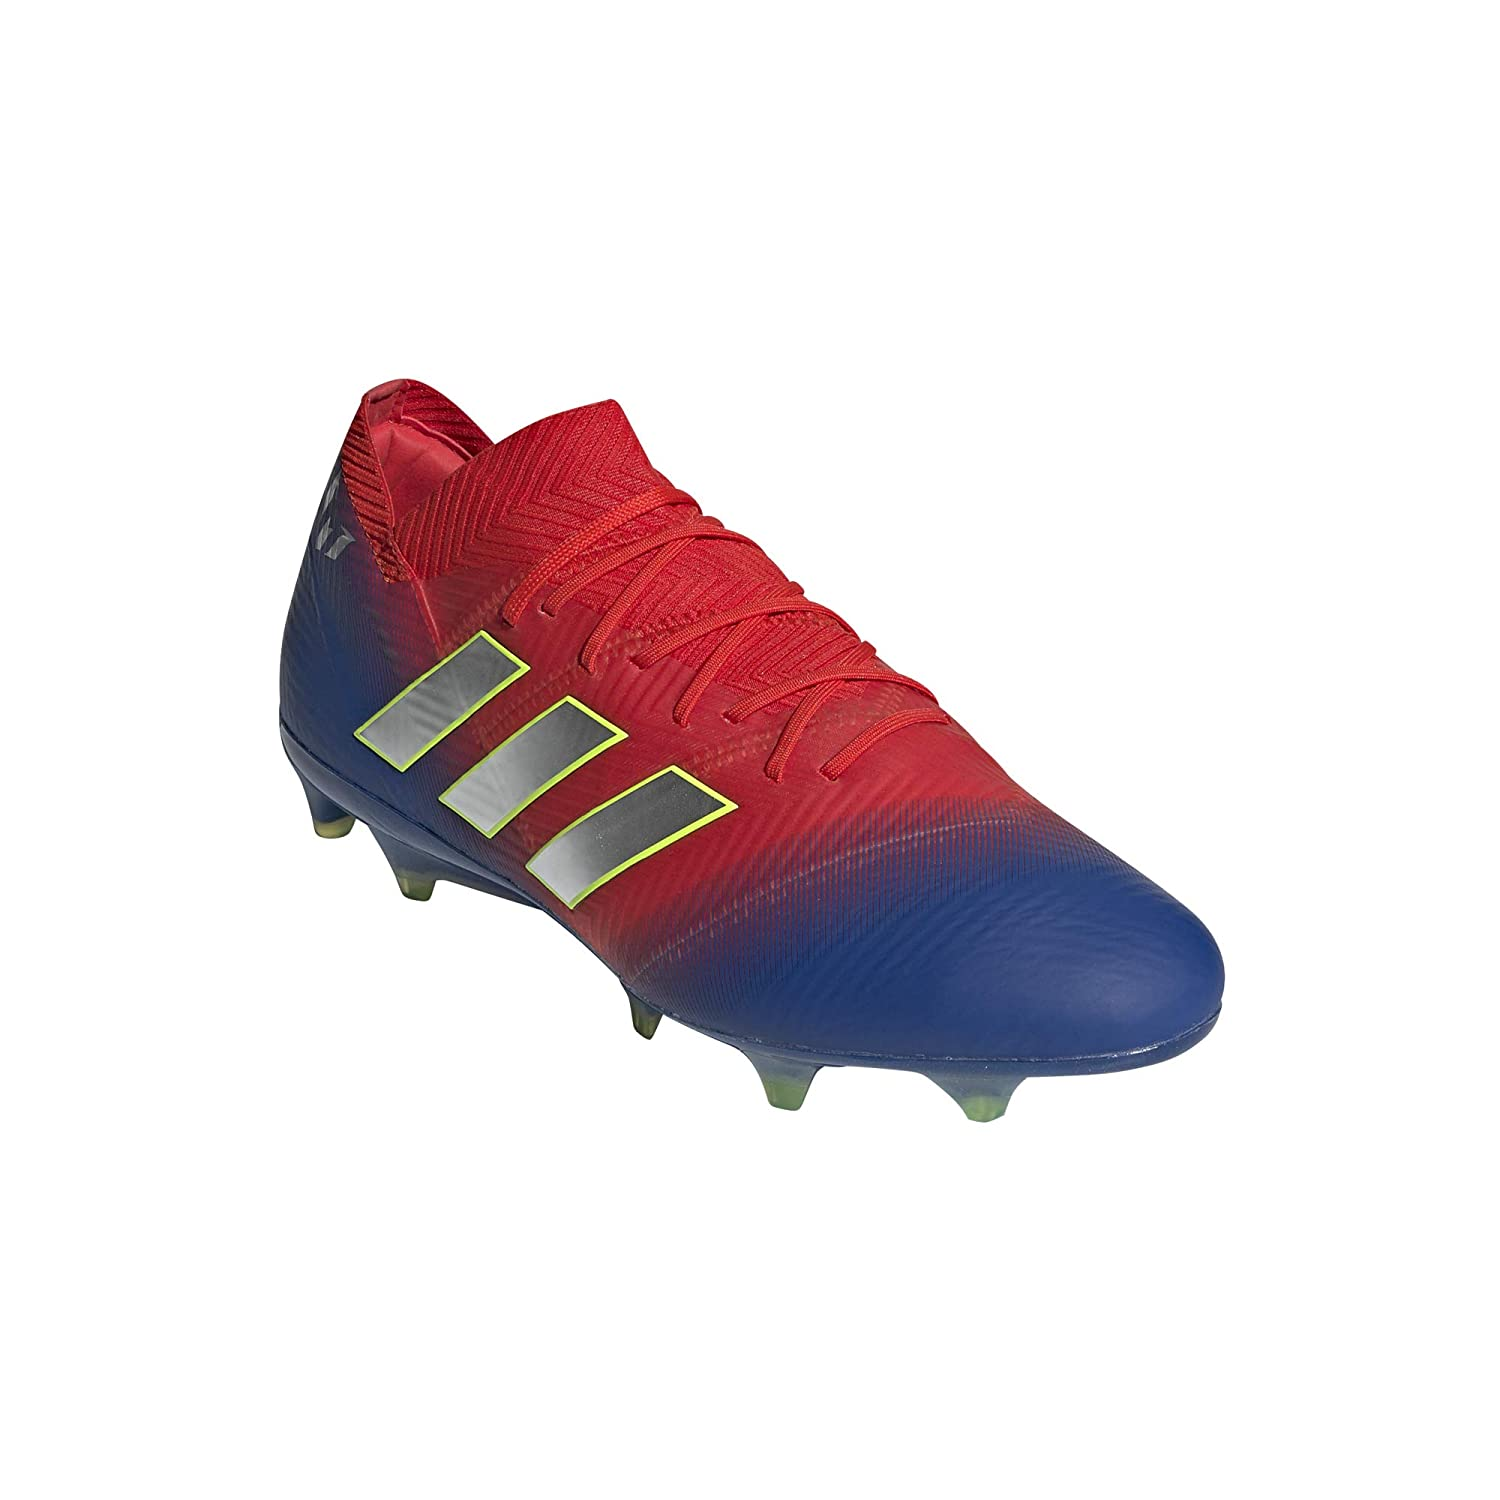 cc4470aeff9 adidas Men s Nemeziz Messi 18.1 Fg Football Boots  Amazon.co.uk  Shoes    Bags